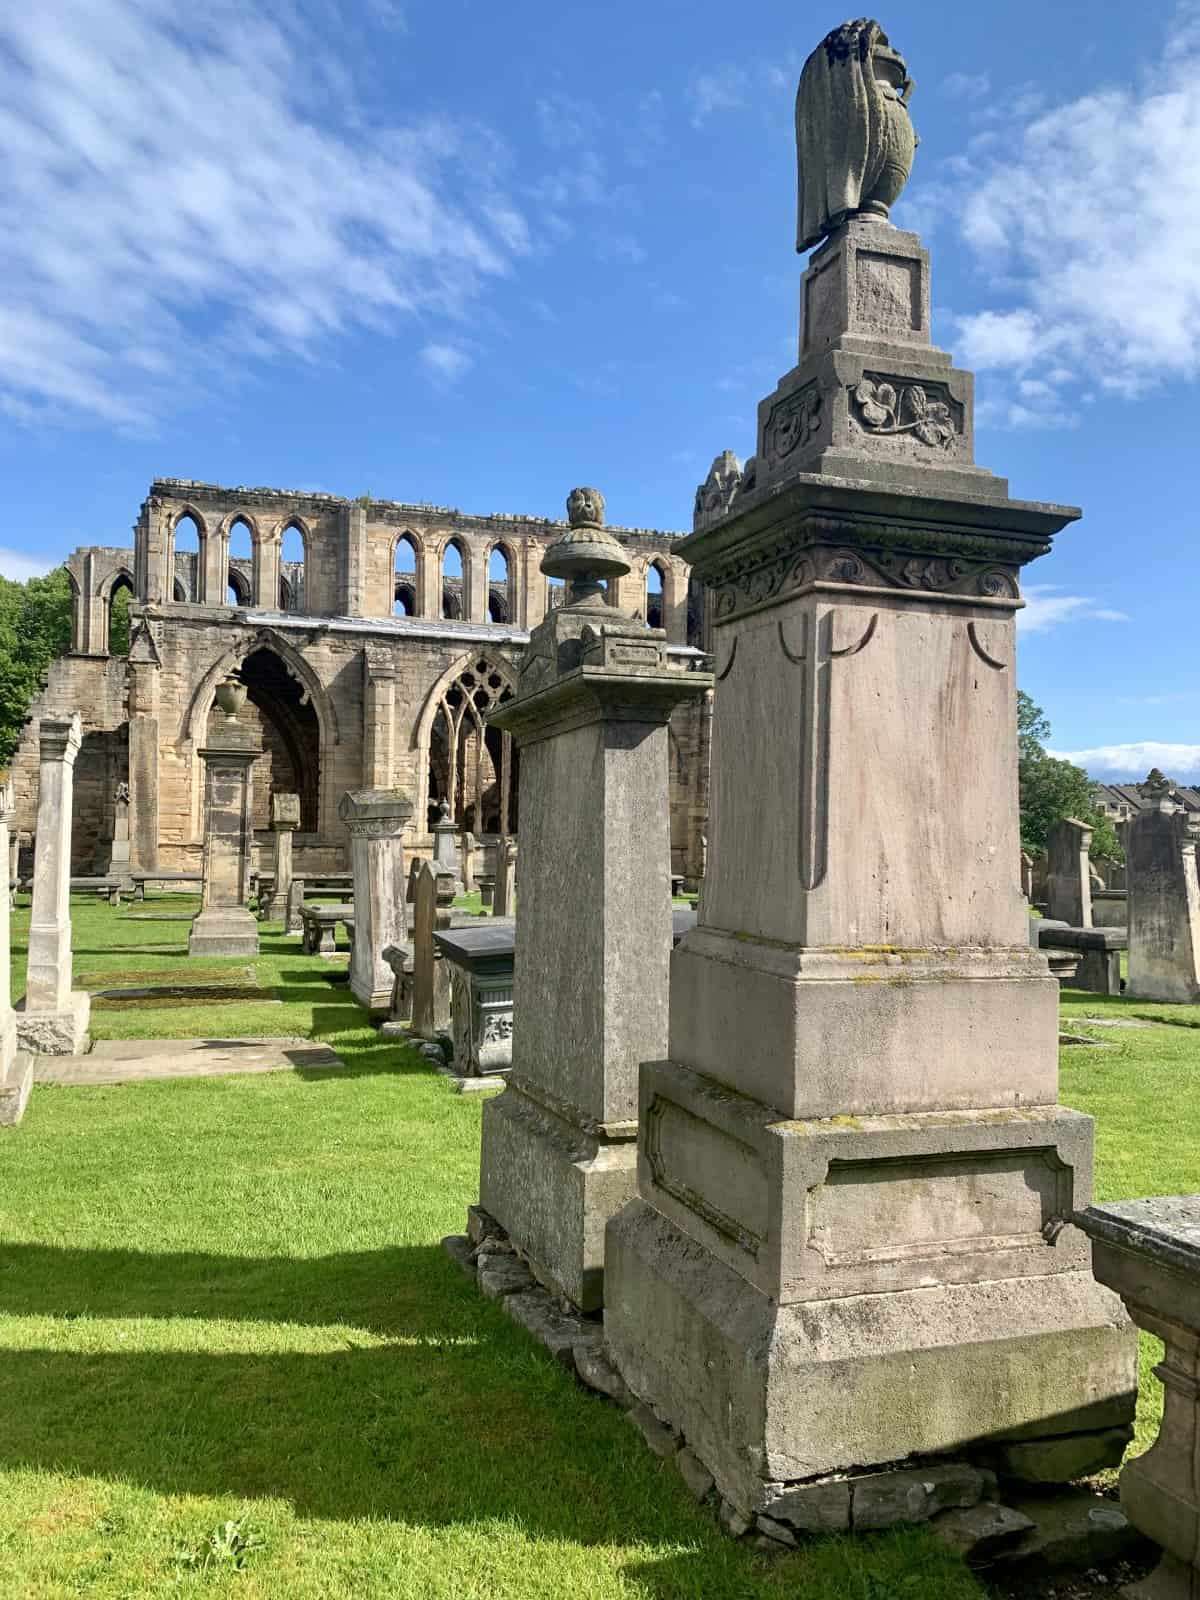 Super old gravestones at Elgin Cathedral, in the Moray region of Scotland